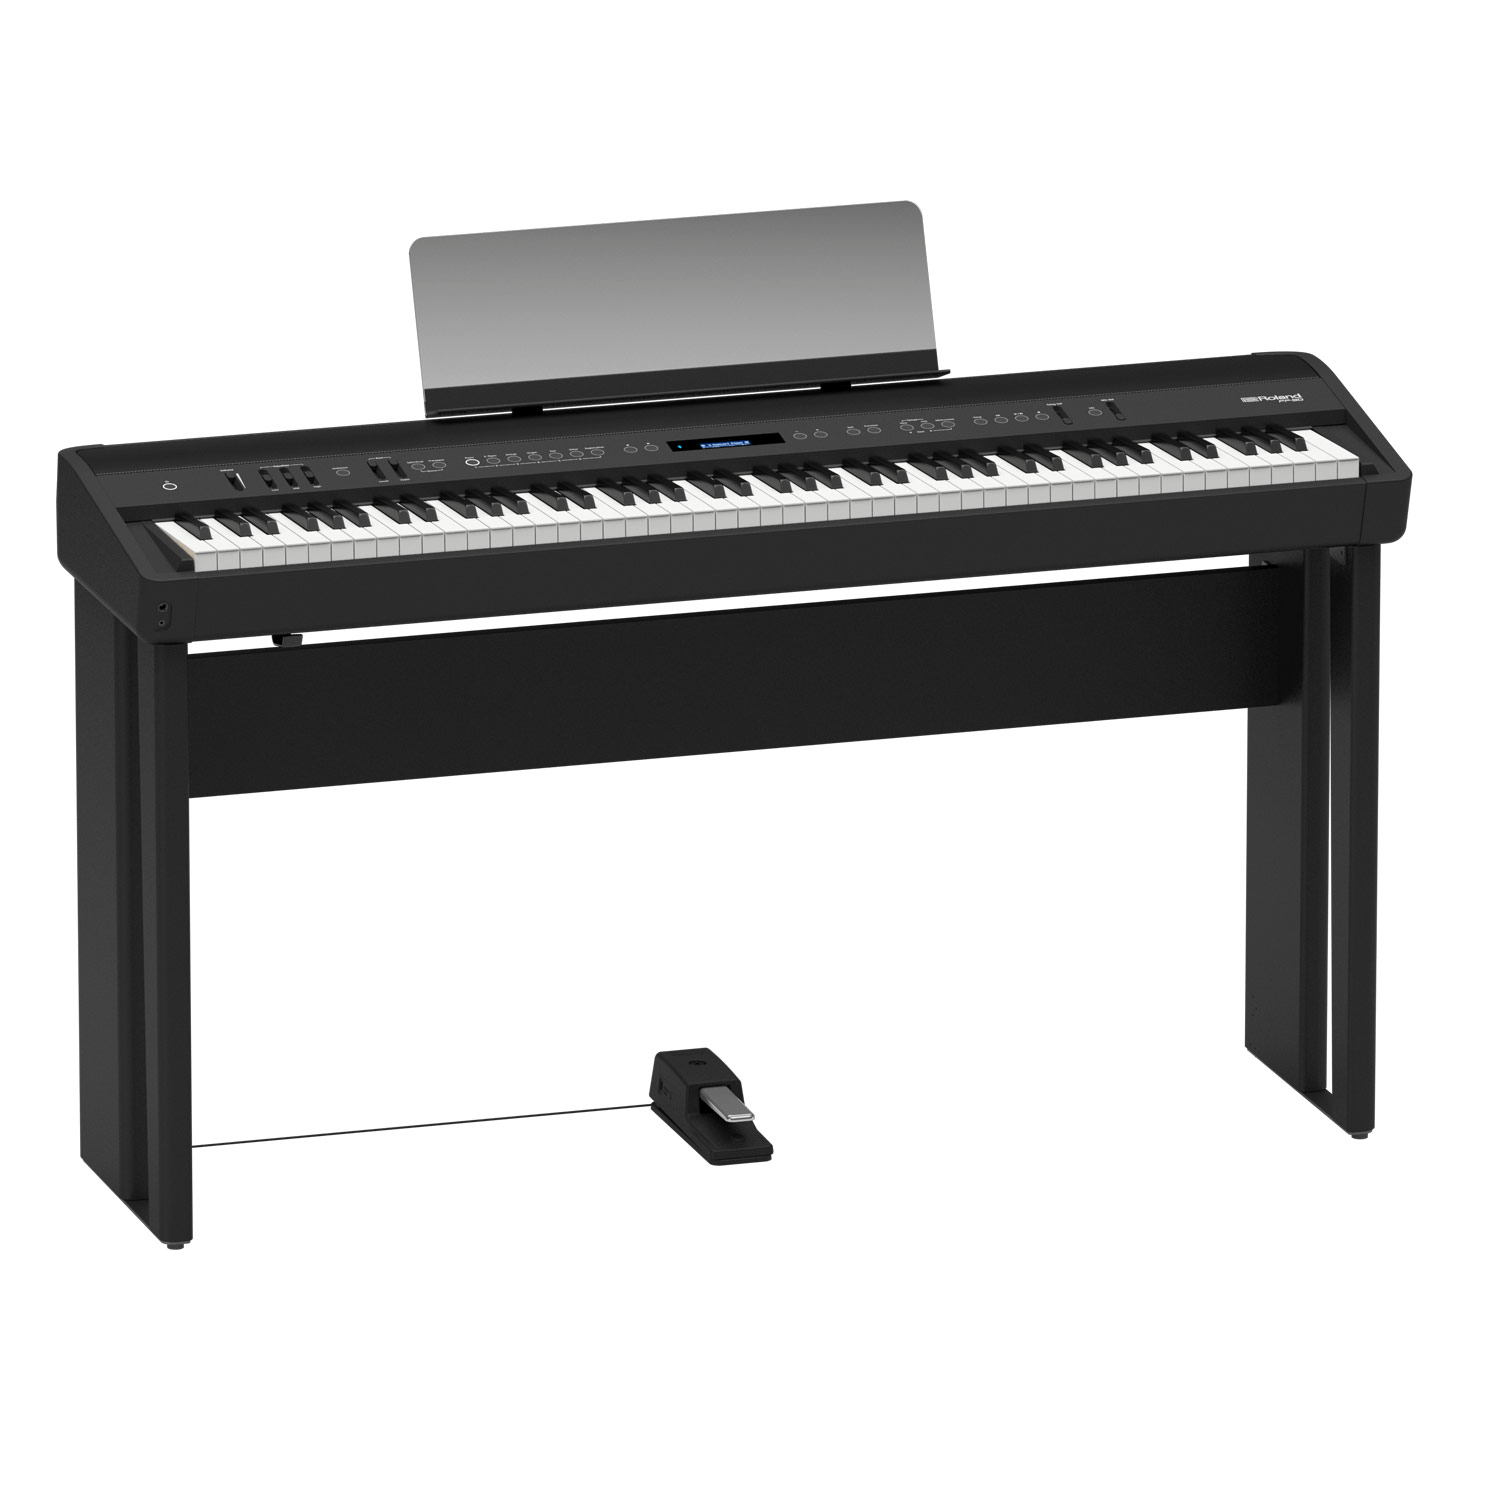 Piano Điện Roland FP-90